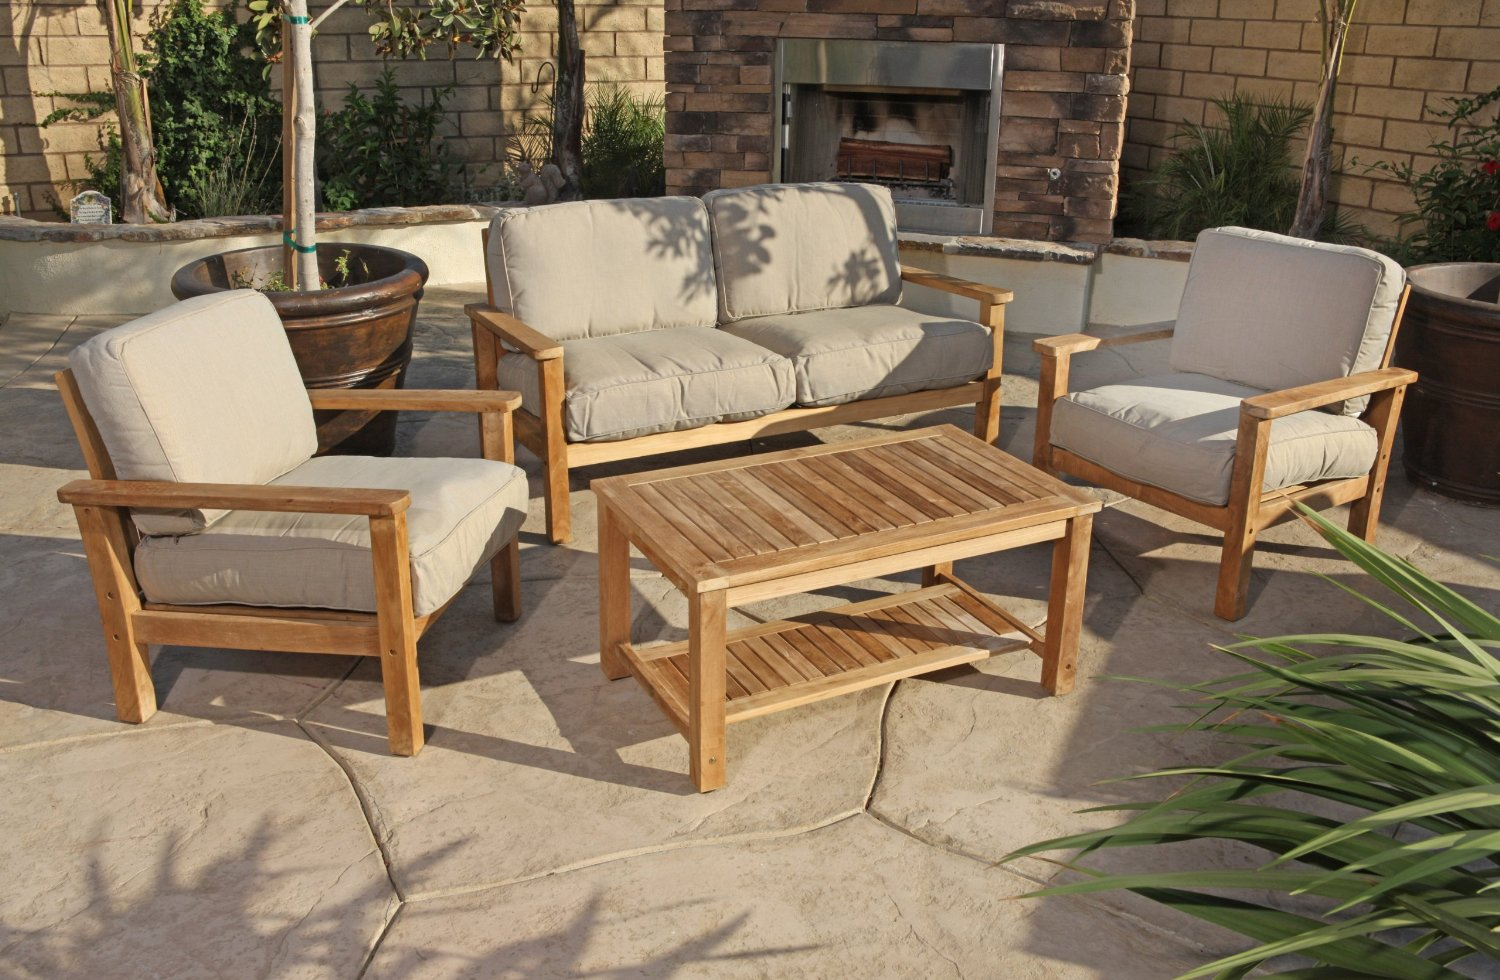 Outdoor Sofa Set Antique Style Beds Modern Wicker Sectional Sets Teak